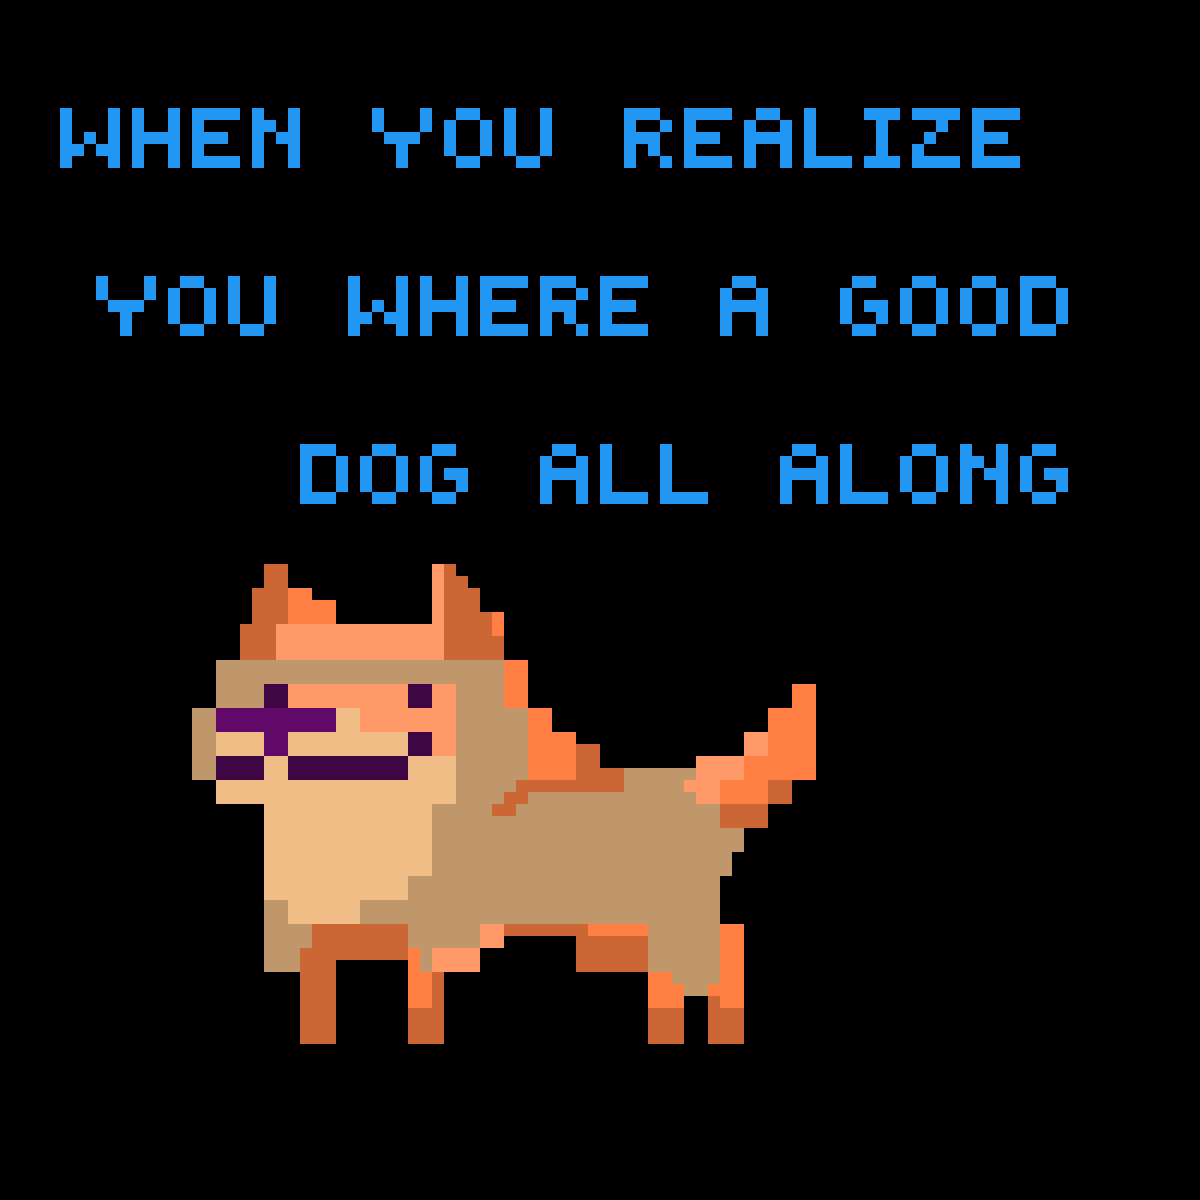 A good dog by uknowitzcasey